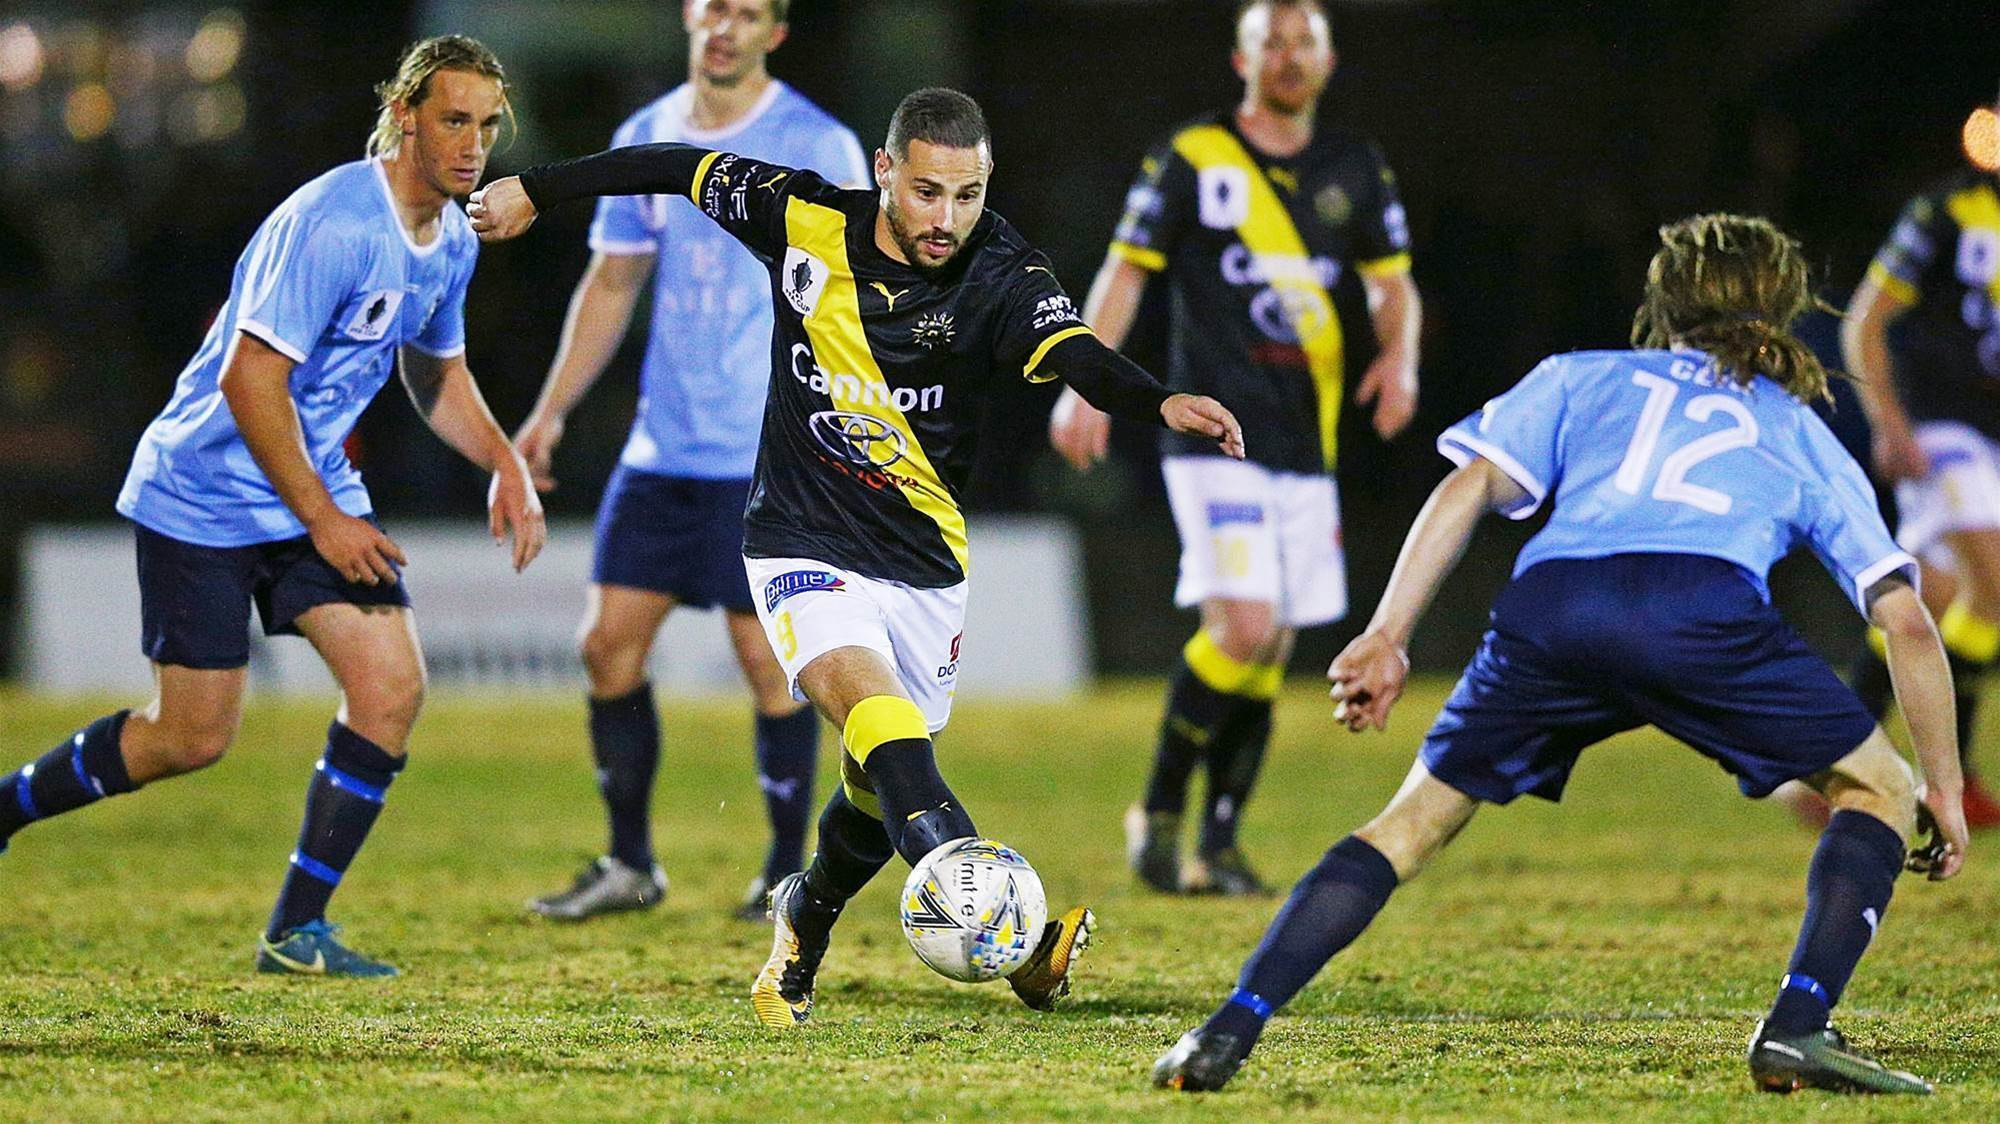 Zahra: Where are the A-League scouts?